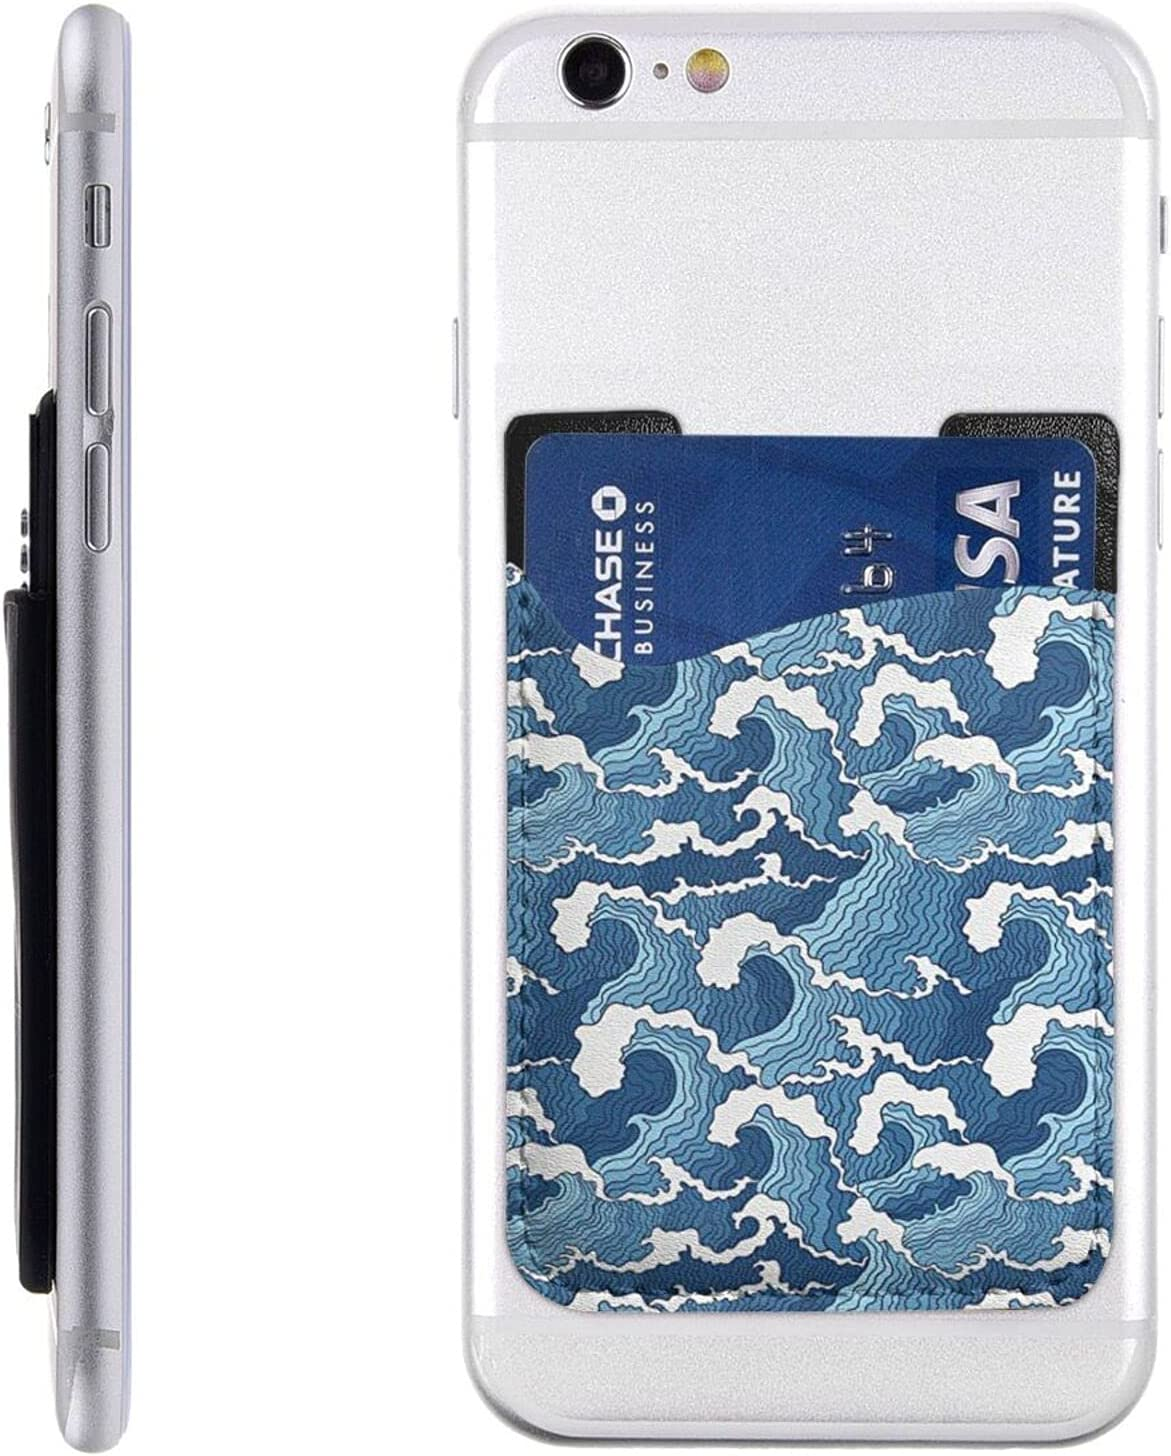 Stormy Sea Phone Card Holder Wallet On Sle Stick Cell Outlet SALE mart